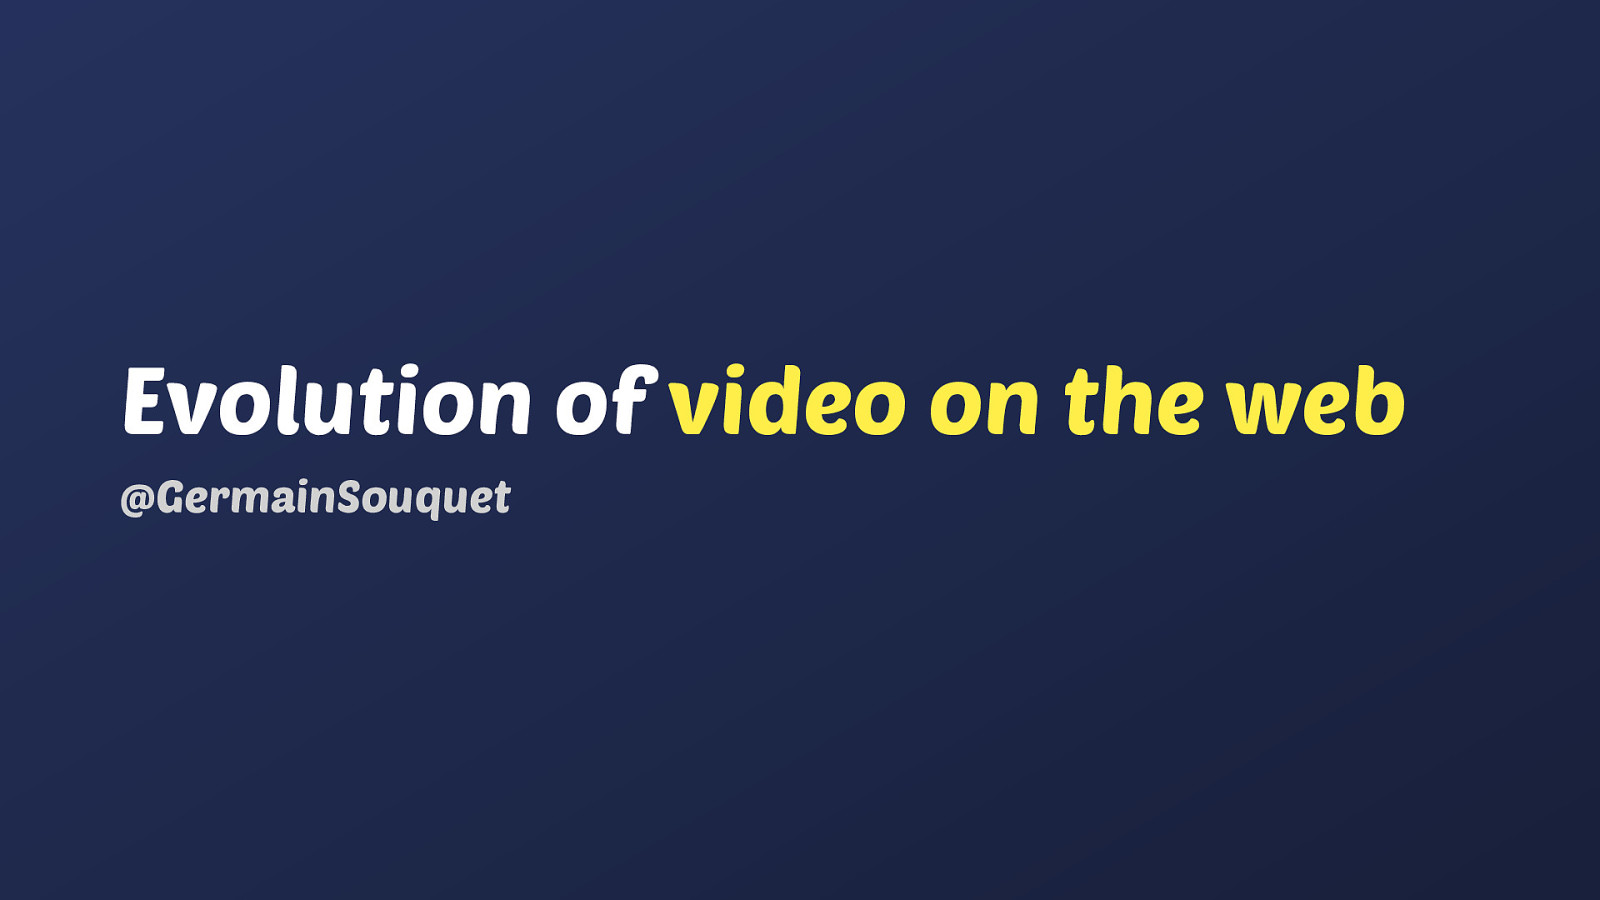 Evolution of video on the web